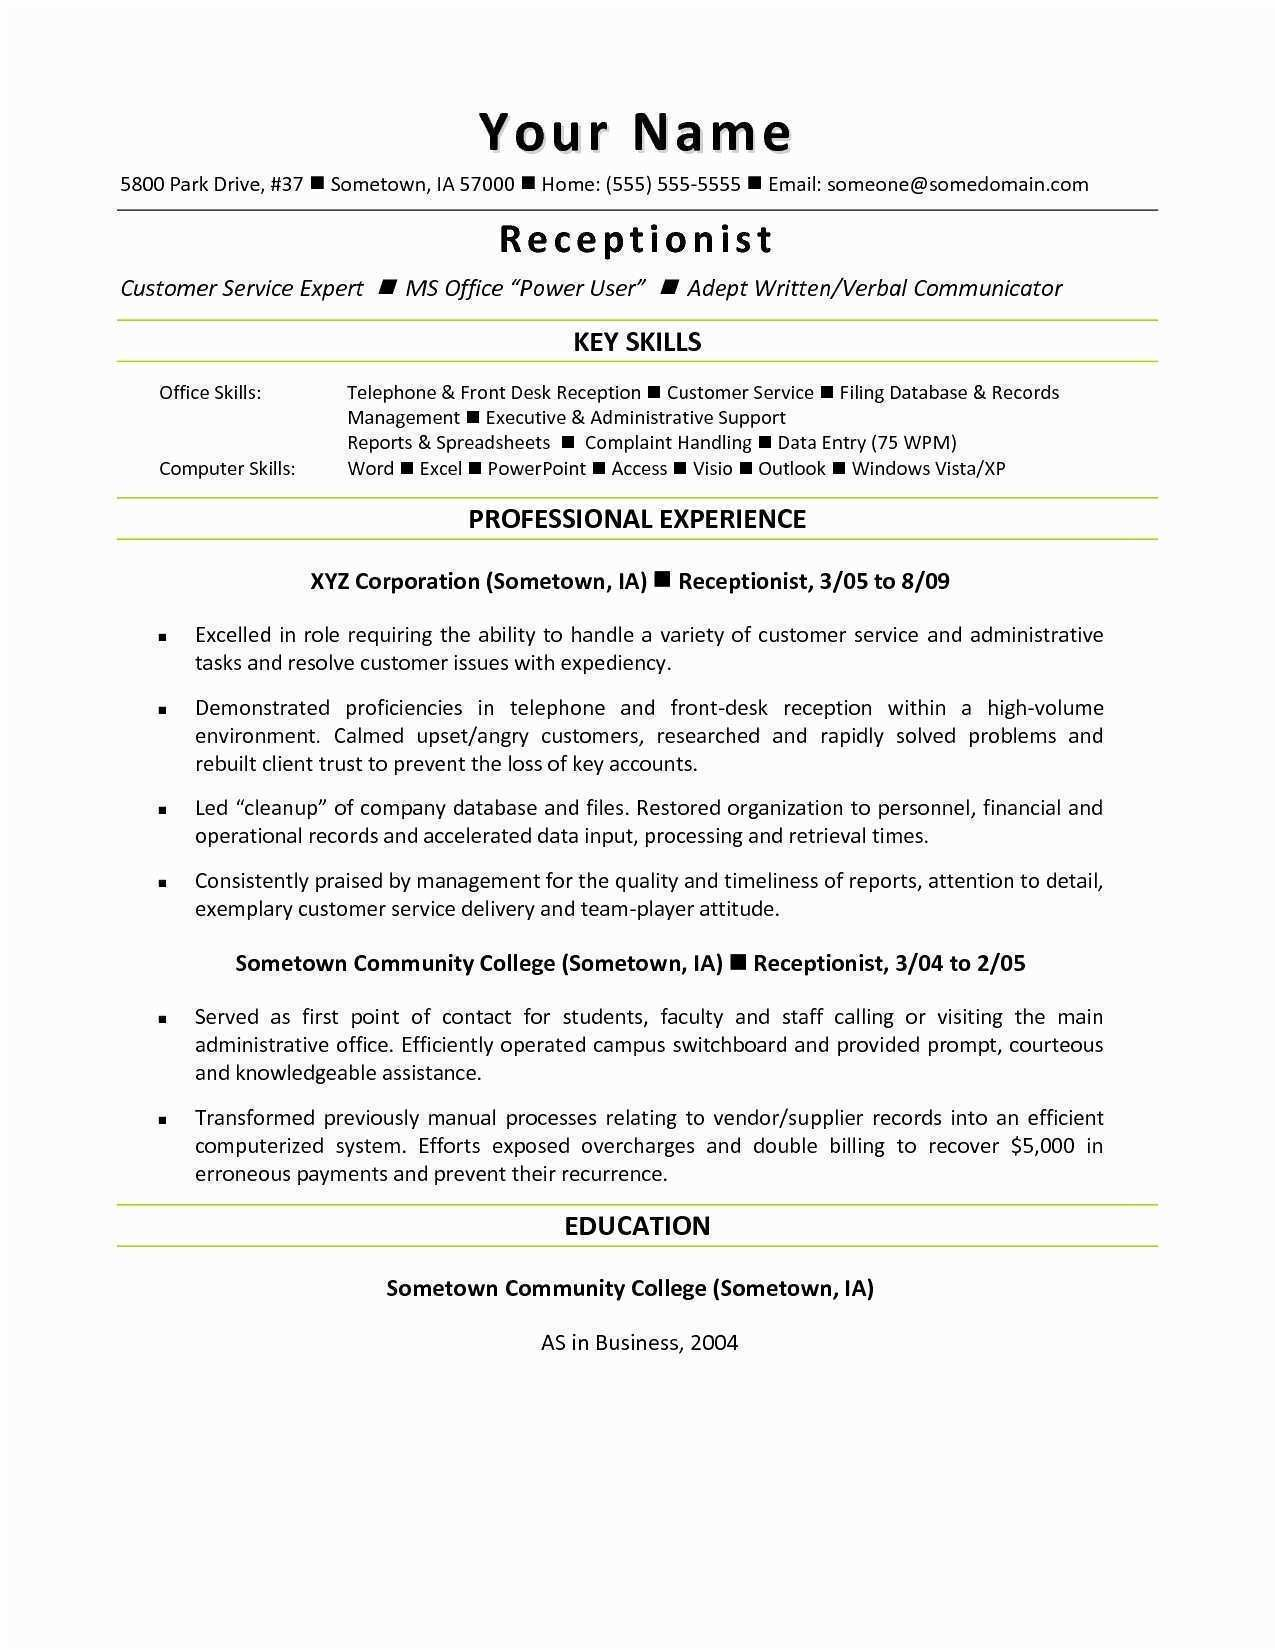 notarized letter template word Collection-Letter Agreement Examples Luxury Template Awesome Free Resume 0d Notarized Word 7 18-q